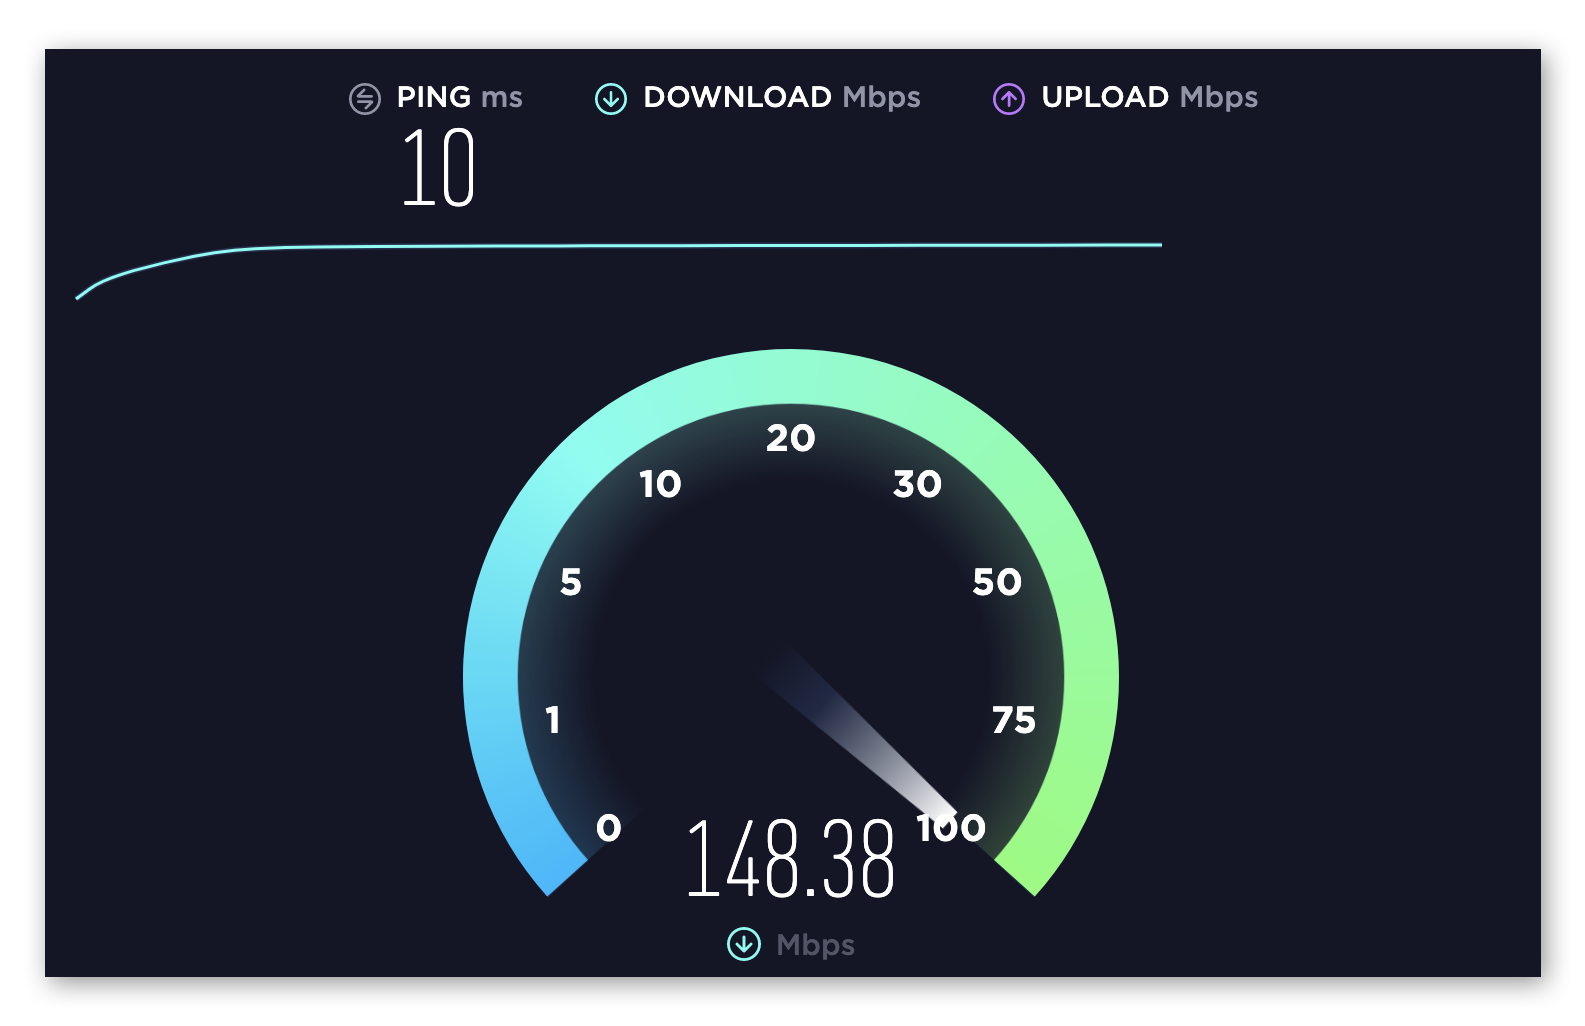 Performing an internet speed test at www.speedtest.net